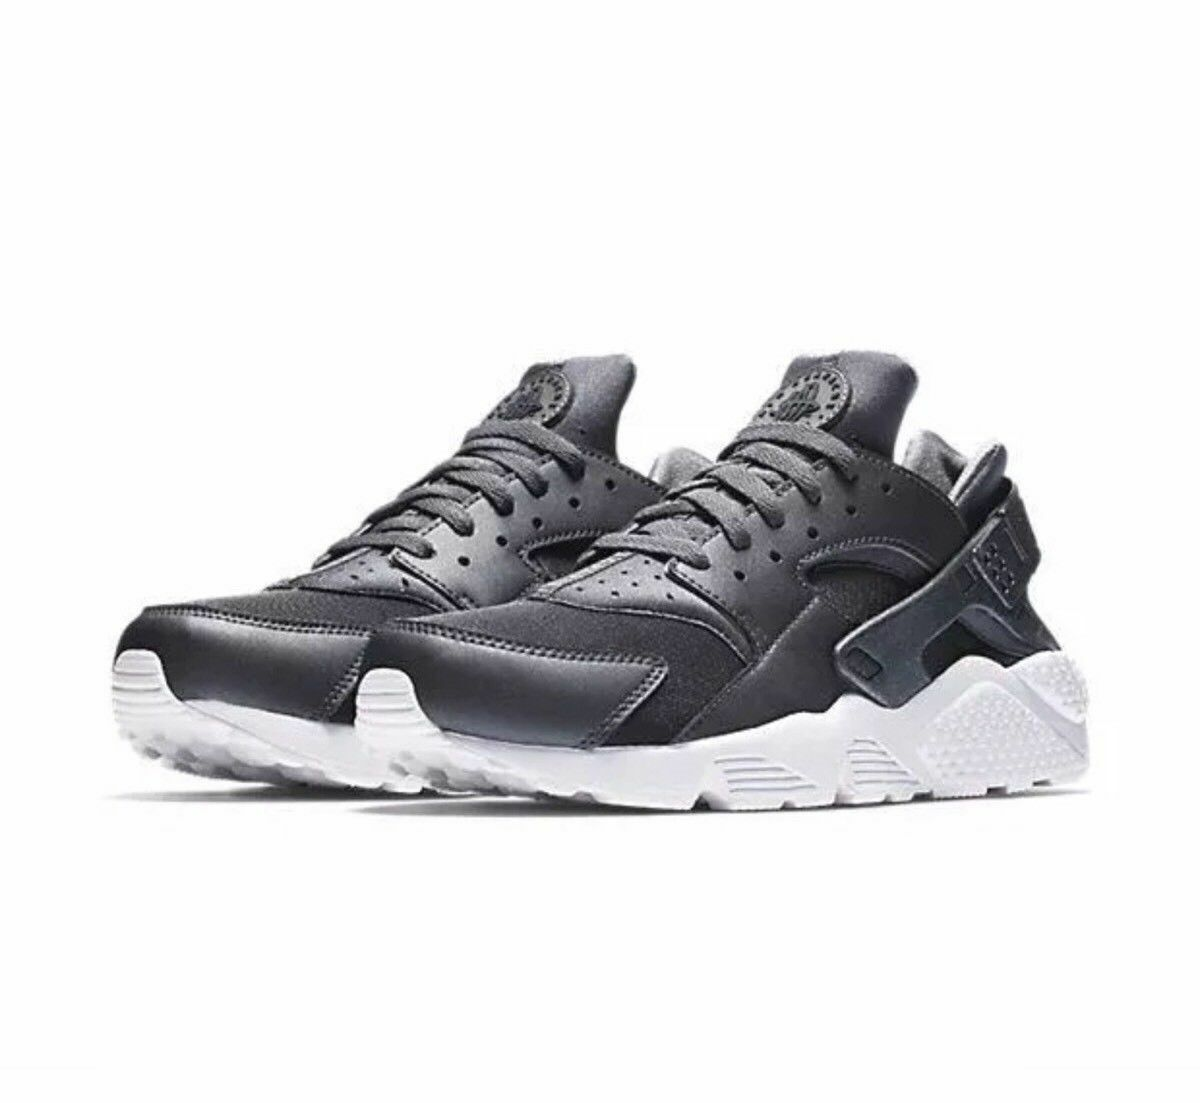 NIKE AIR HUARACHE RUN PREMIUM SHOES METALLIC HEMATITE 704830-009 SIZE 8.5